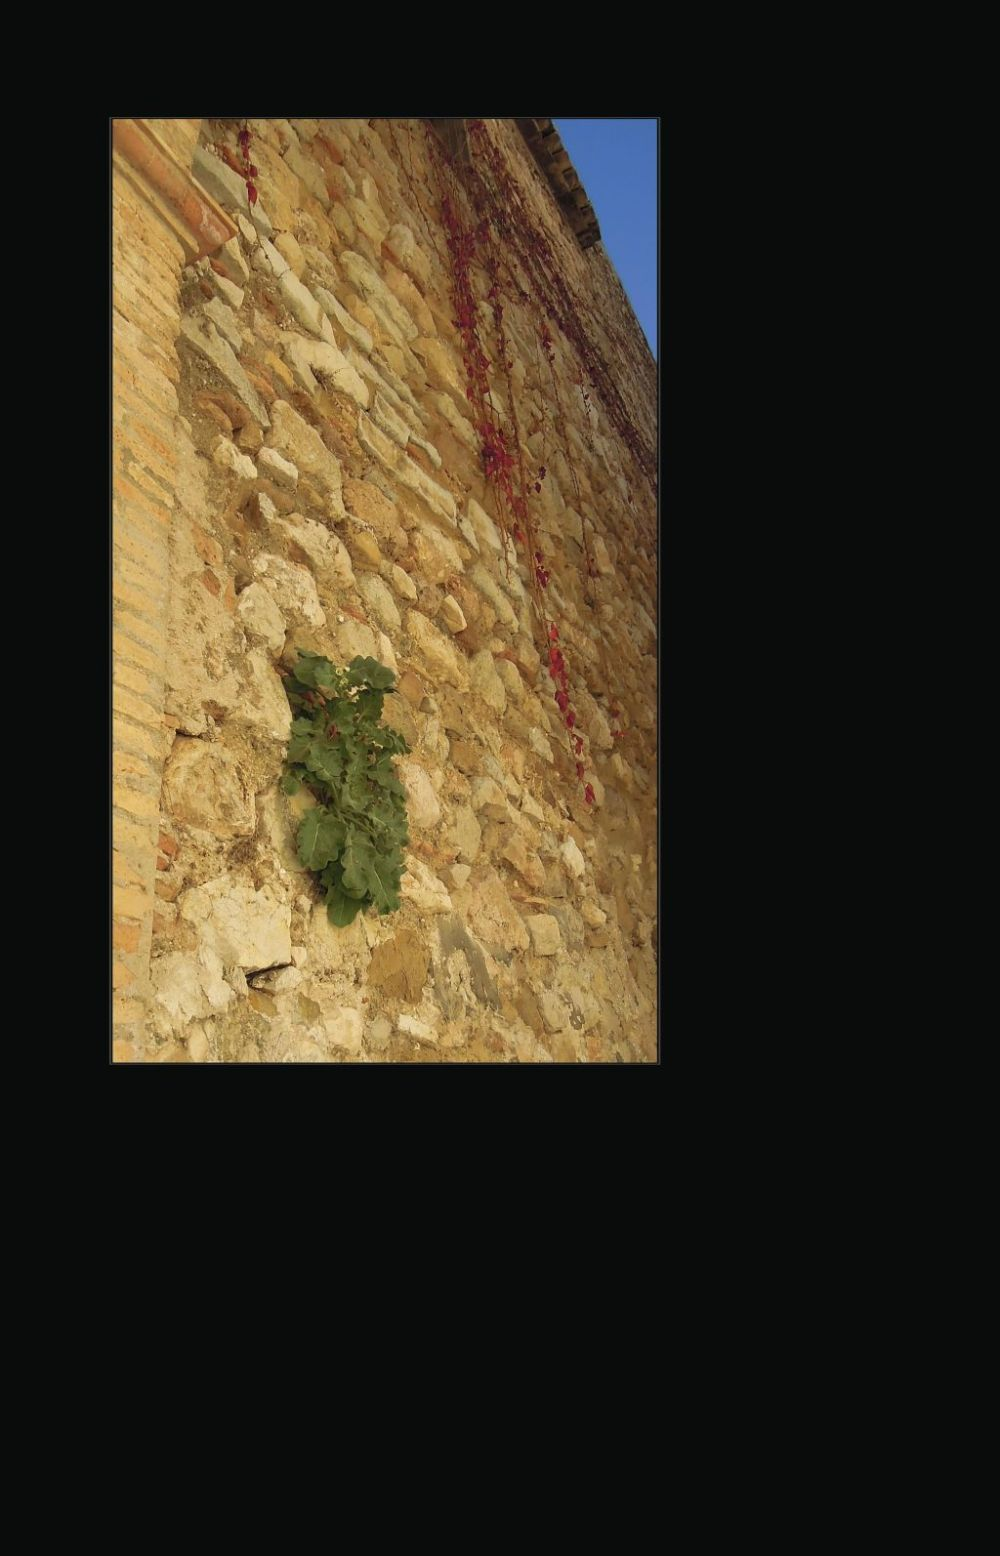 Weeds Growing in The Stone Wall